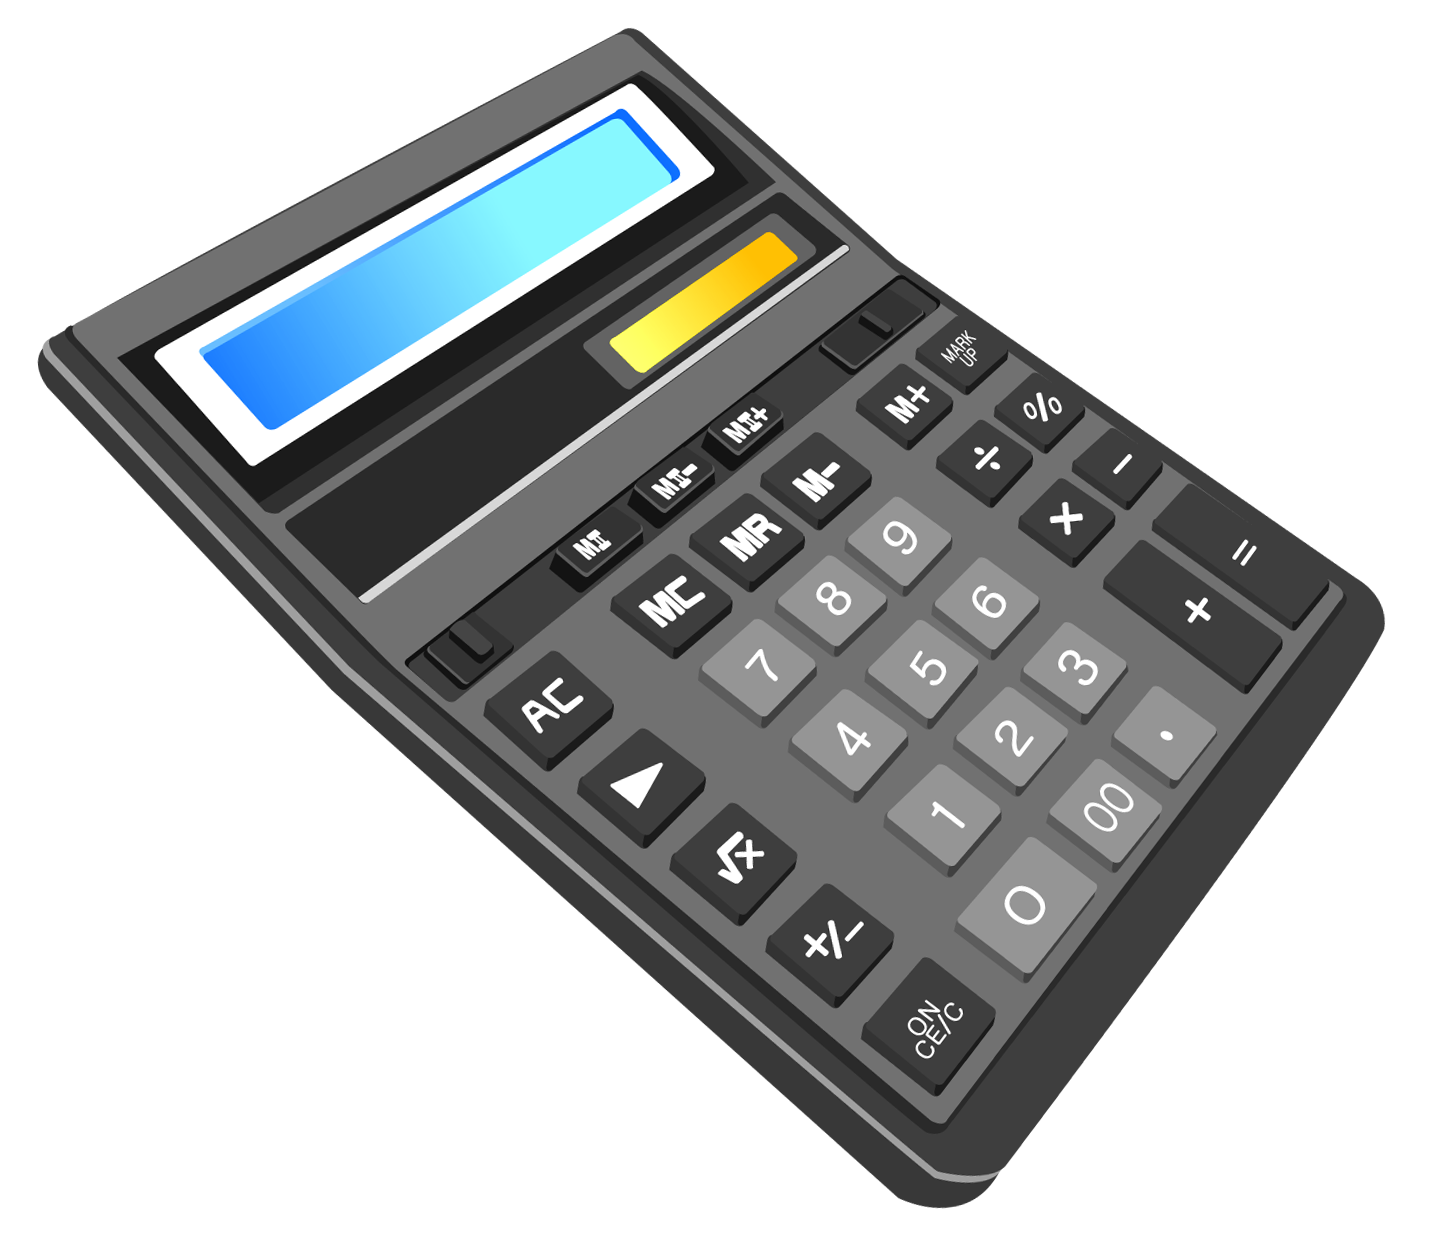 Calculator clipart school. Transparent png gallery yopriceville